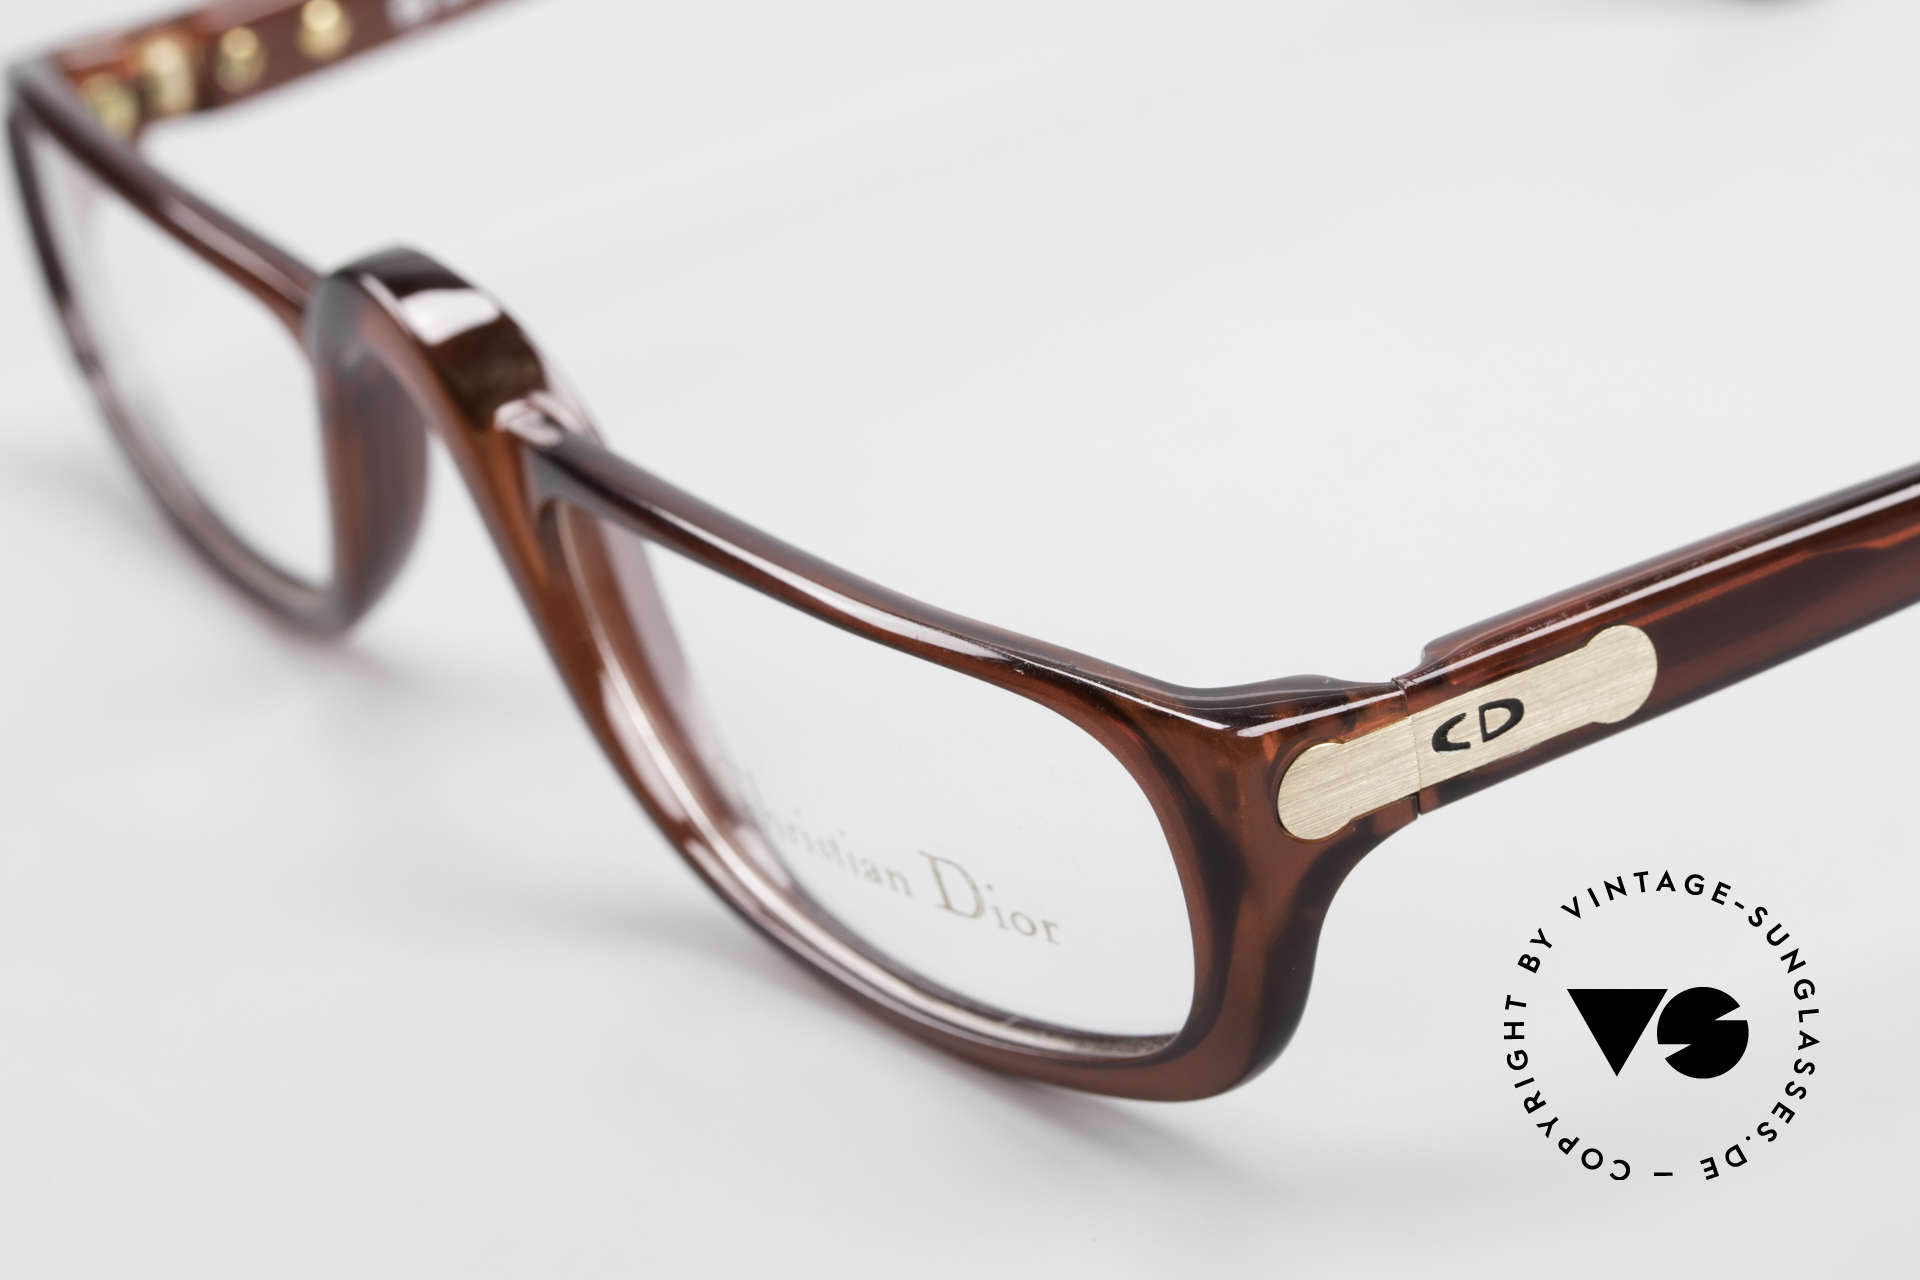 Christian Dior 2075 Reading Glasses Large Optyl, the incredible OPTYL material does not seem to age, Made for Men and Women